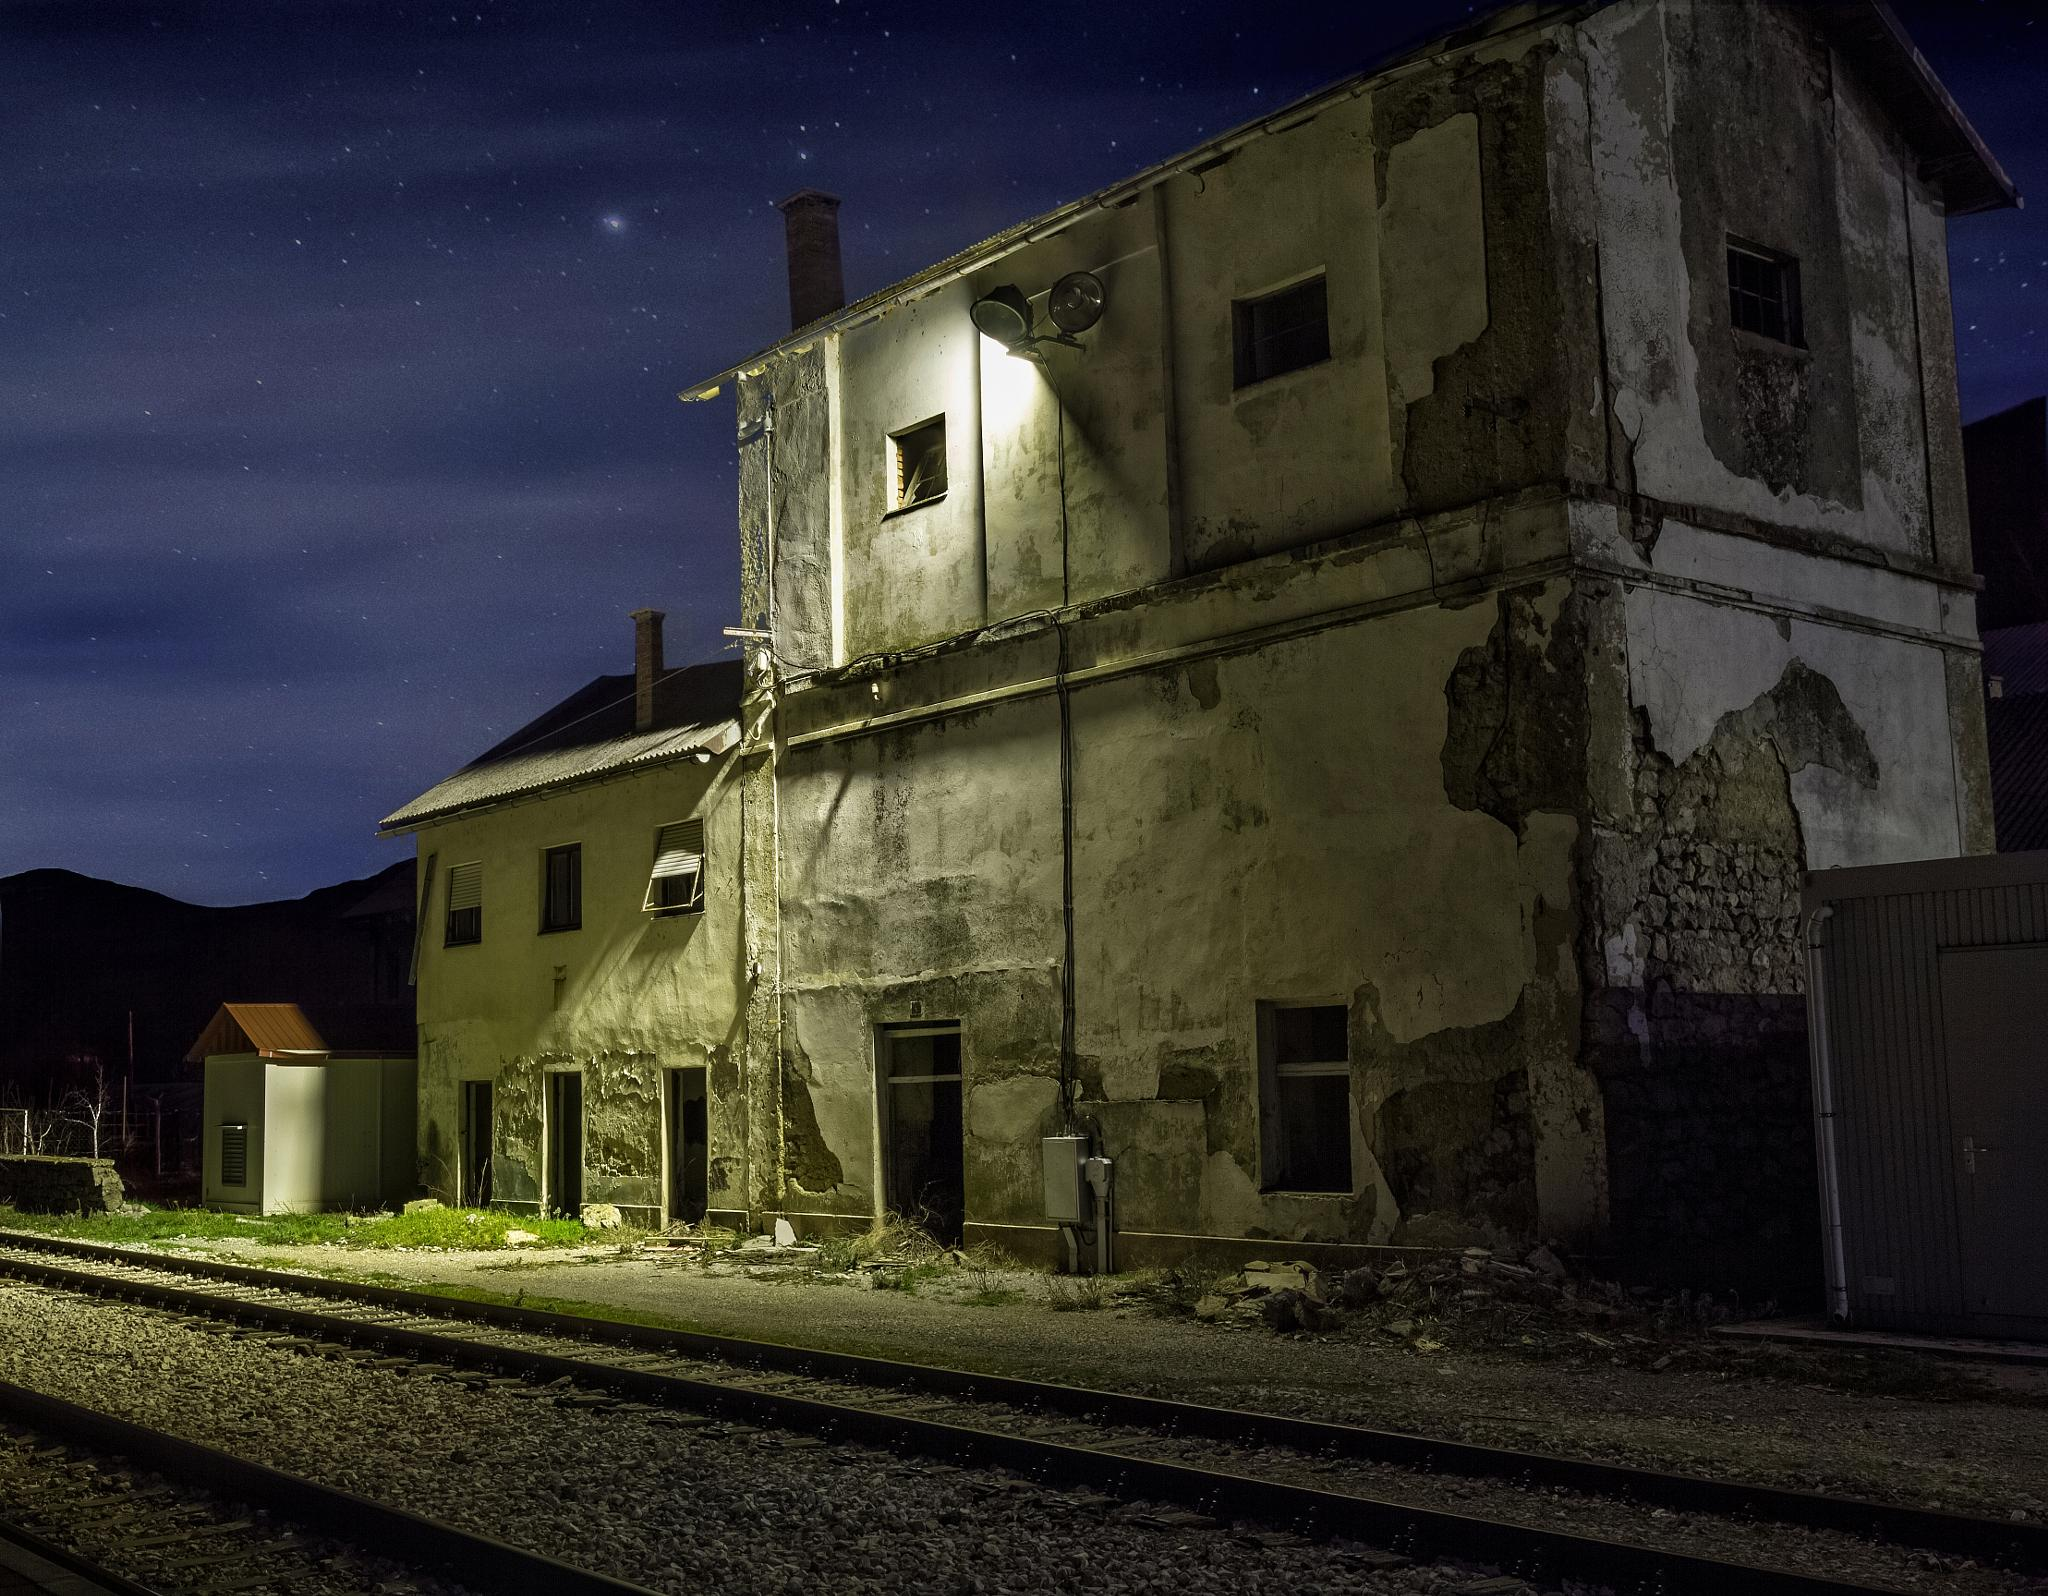 Abandoned railway house in Gračac, Croatia by Zoran Radakovic